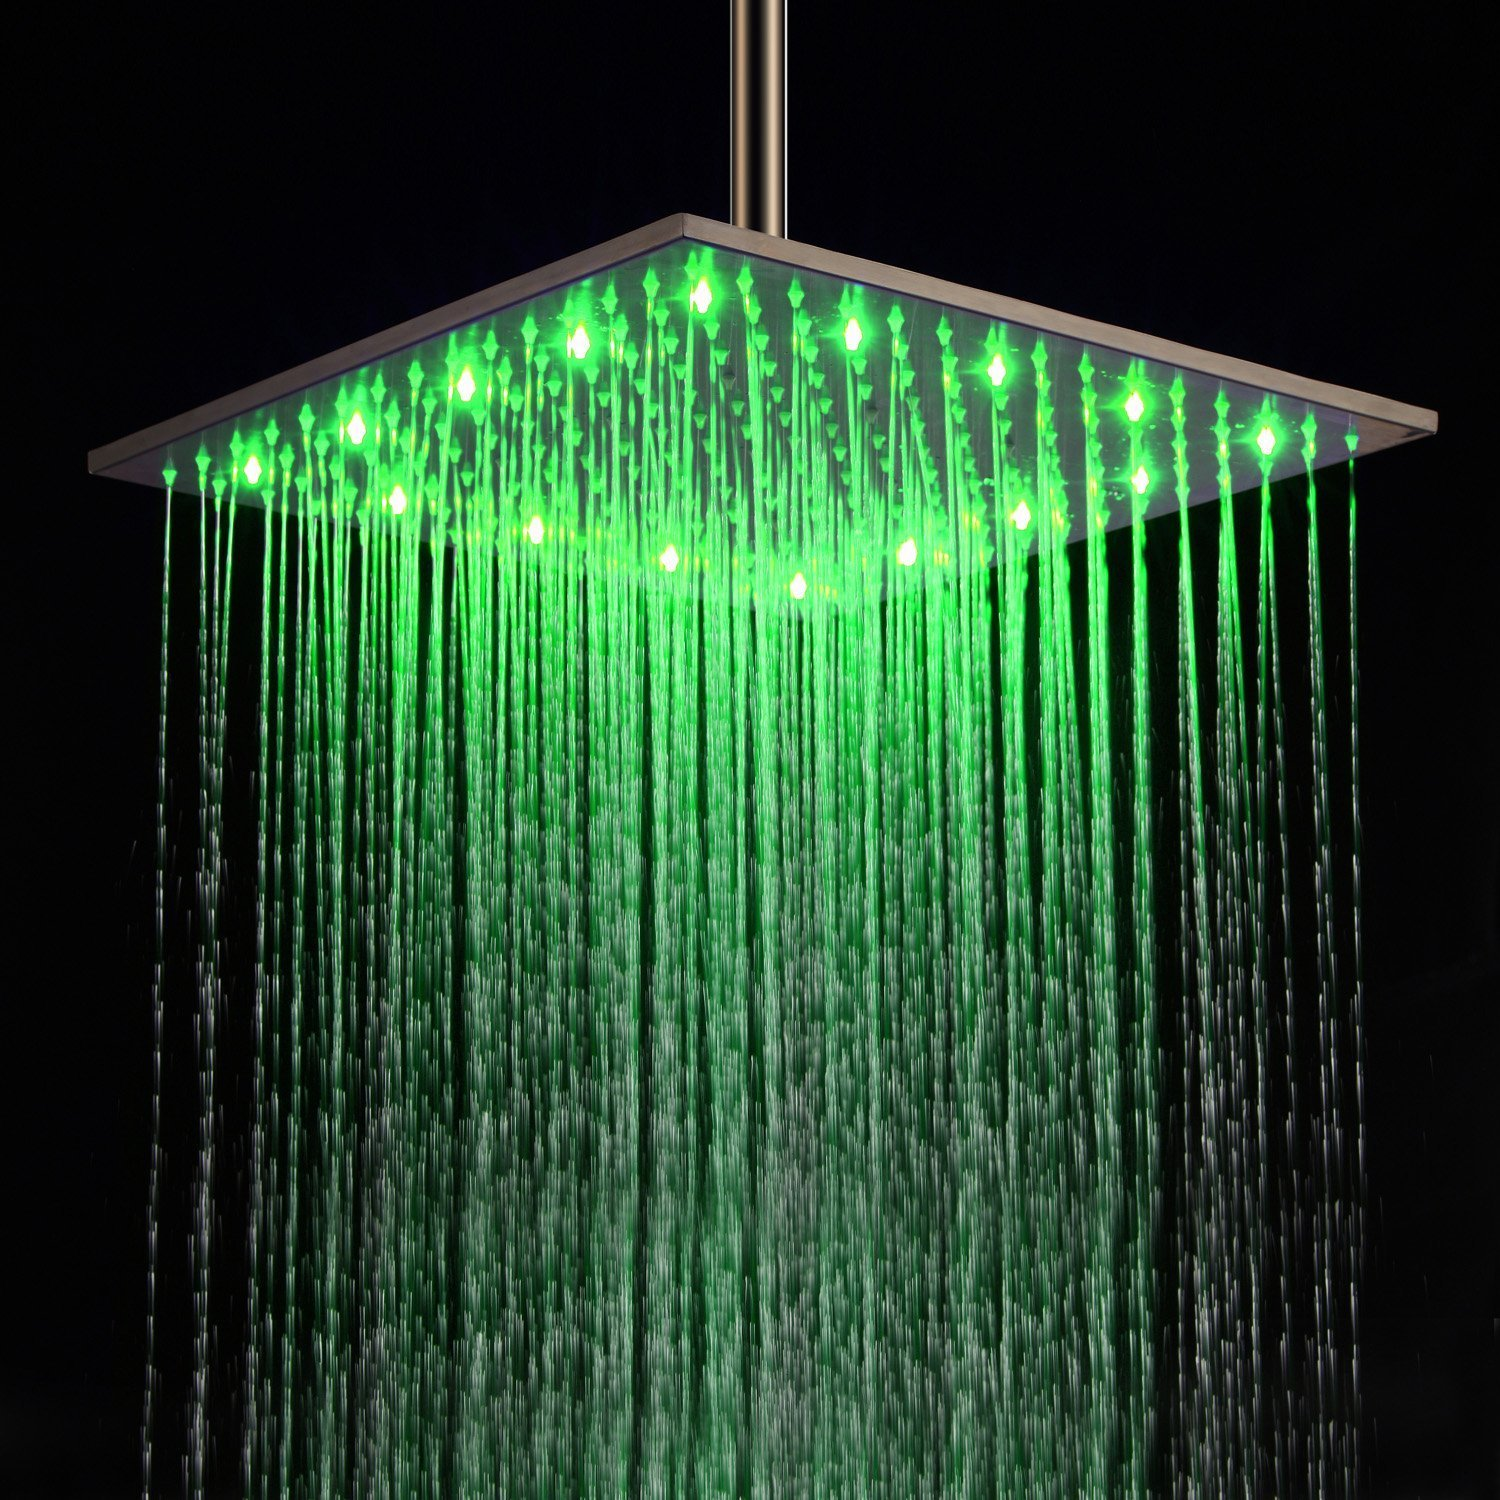 16 Inch Ceiling Mount Square Rainfall LED Shower Head, Stainless ...